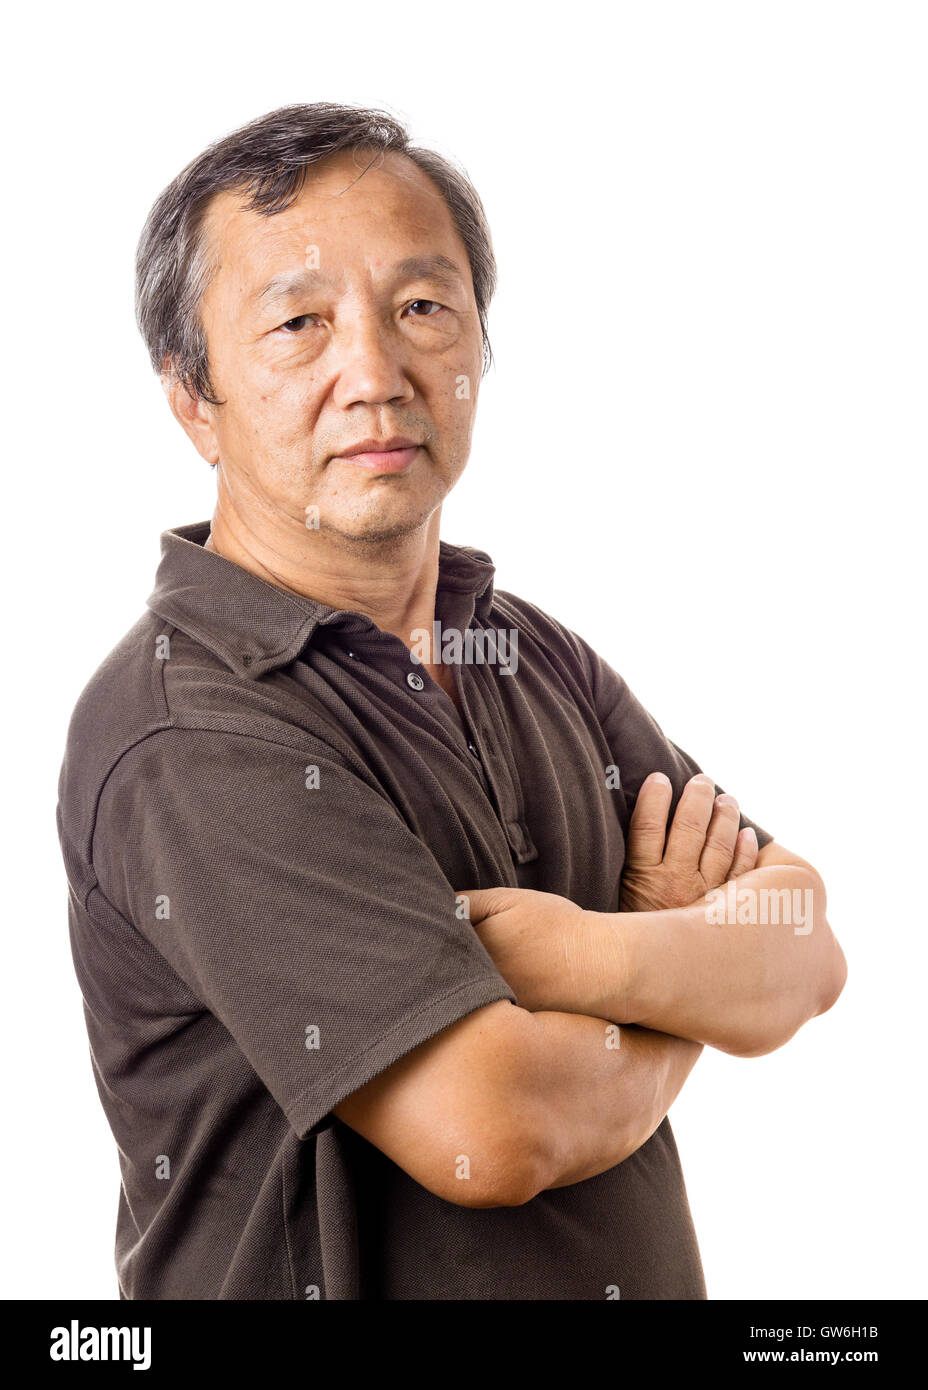 asian mature man stock photo, royalty free image: 118773687 - alamy